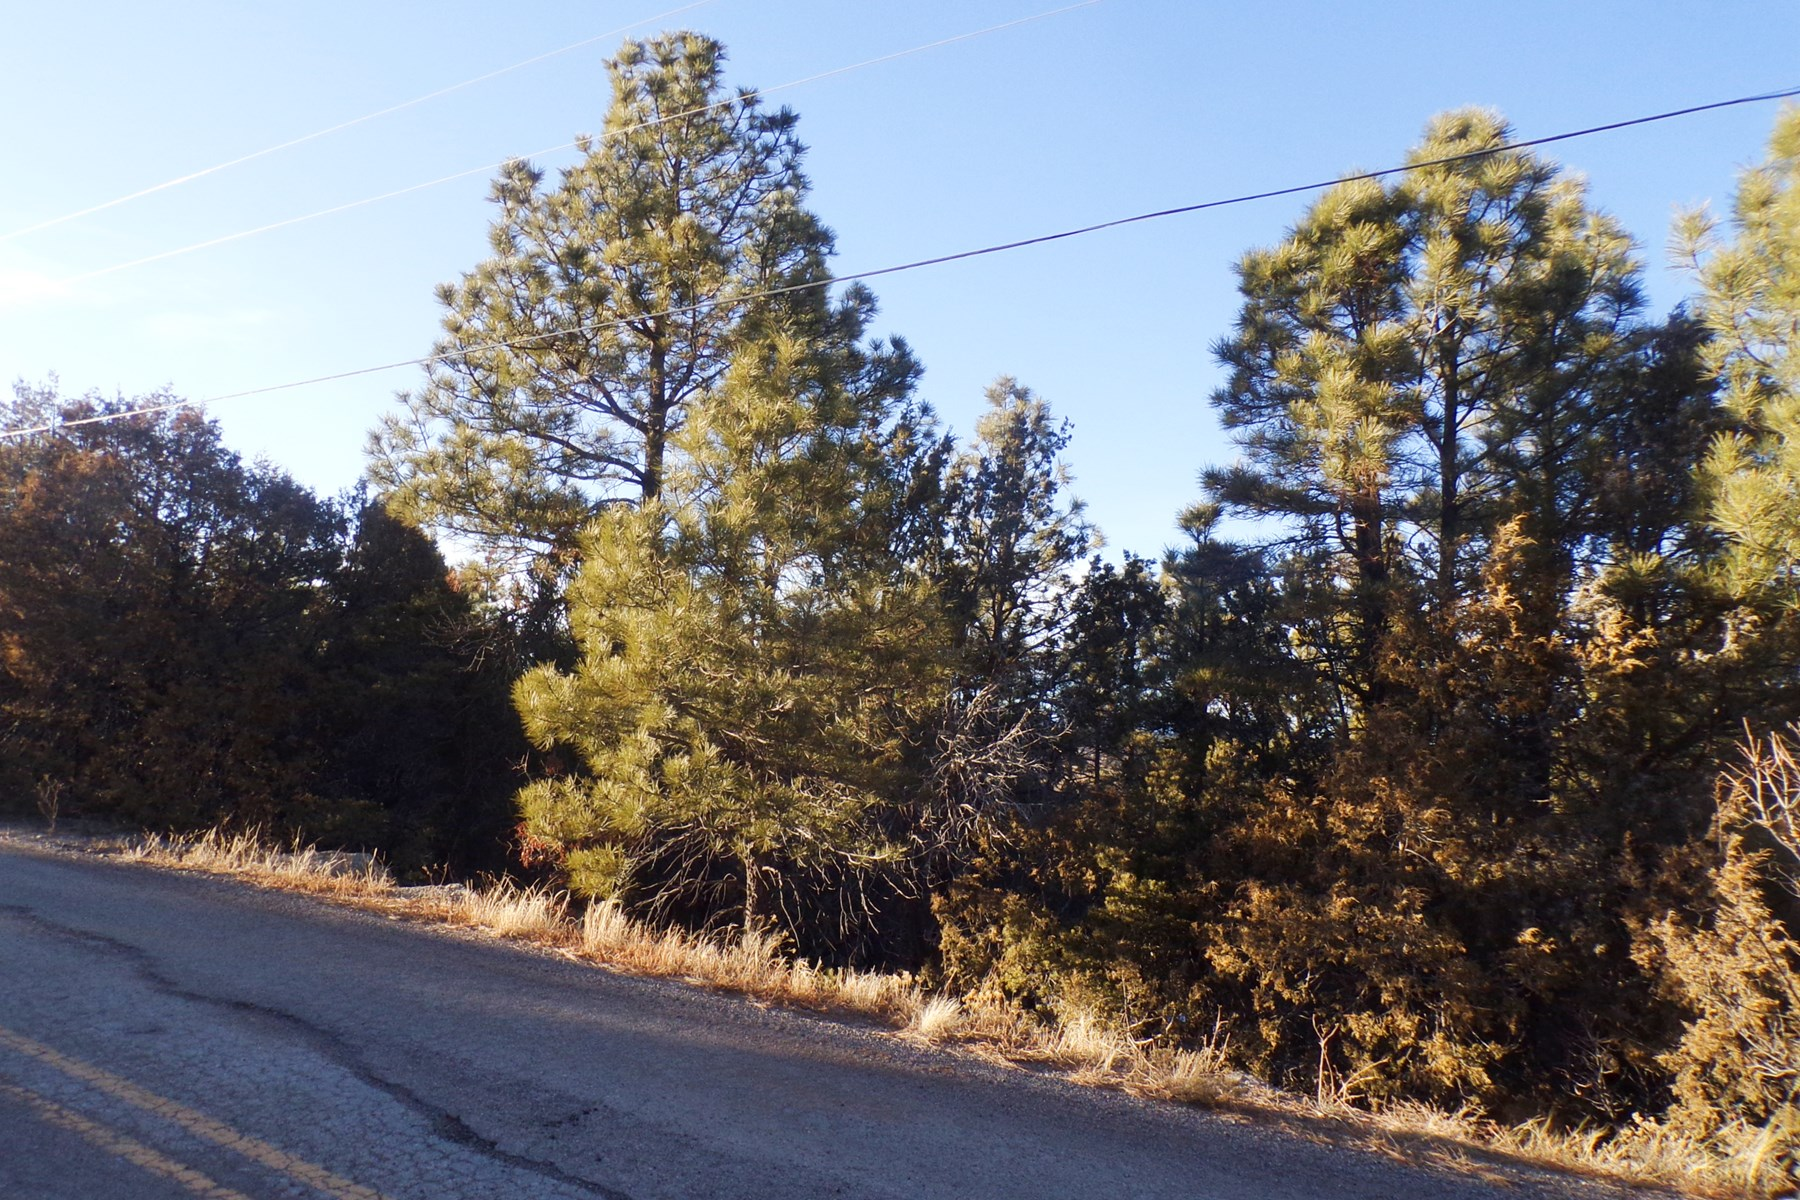 Edgewood, NM Residential 2 Acre Wooded Lot For Sale